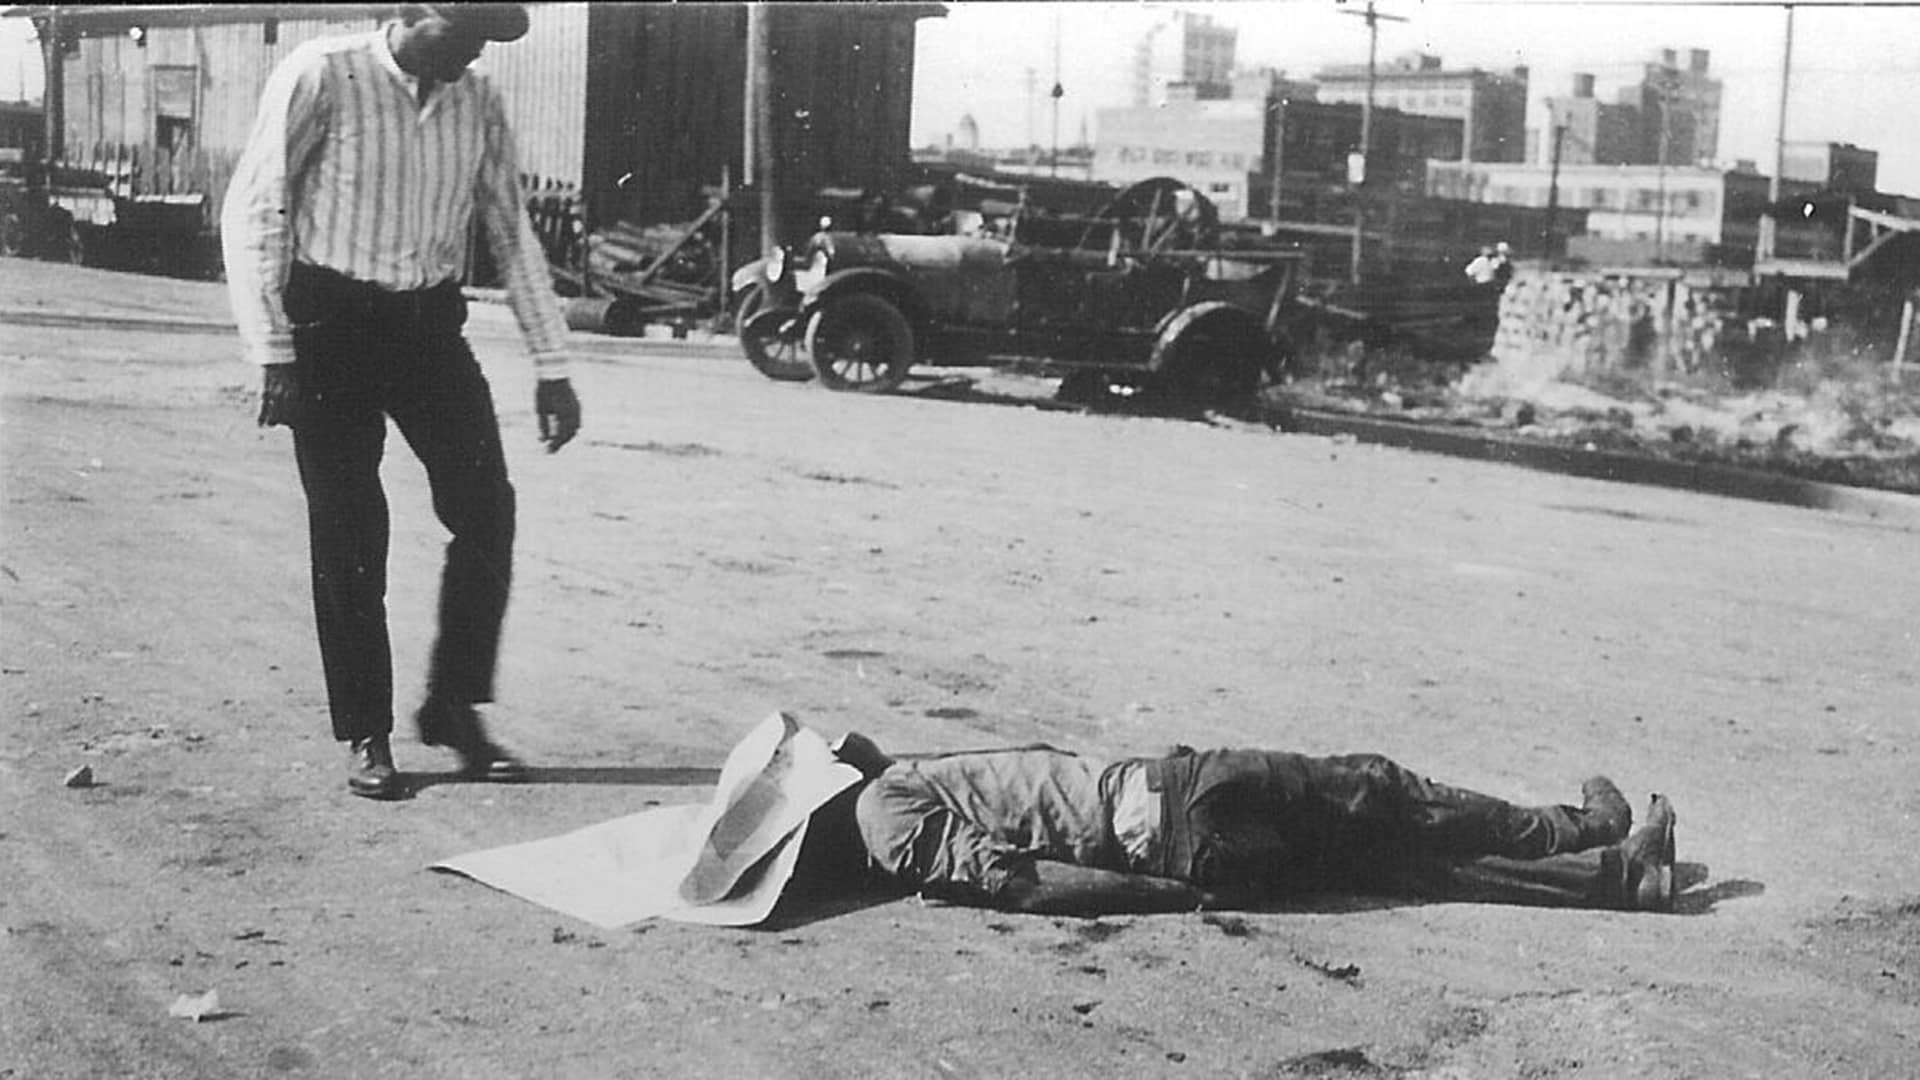 The body of an unidentified Black victim of the Tulsa race massacre lies in the street as a white man stands over him, Tulsa, Oklahoma, June 1, 1921.